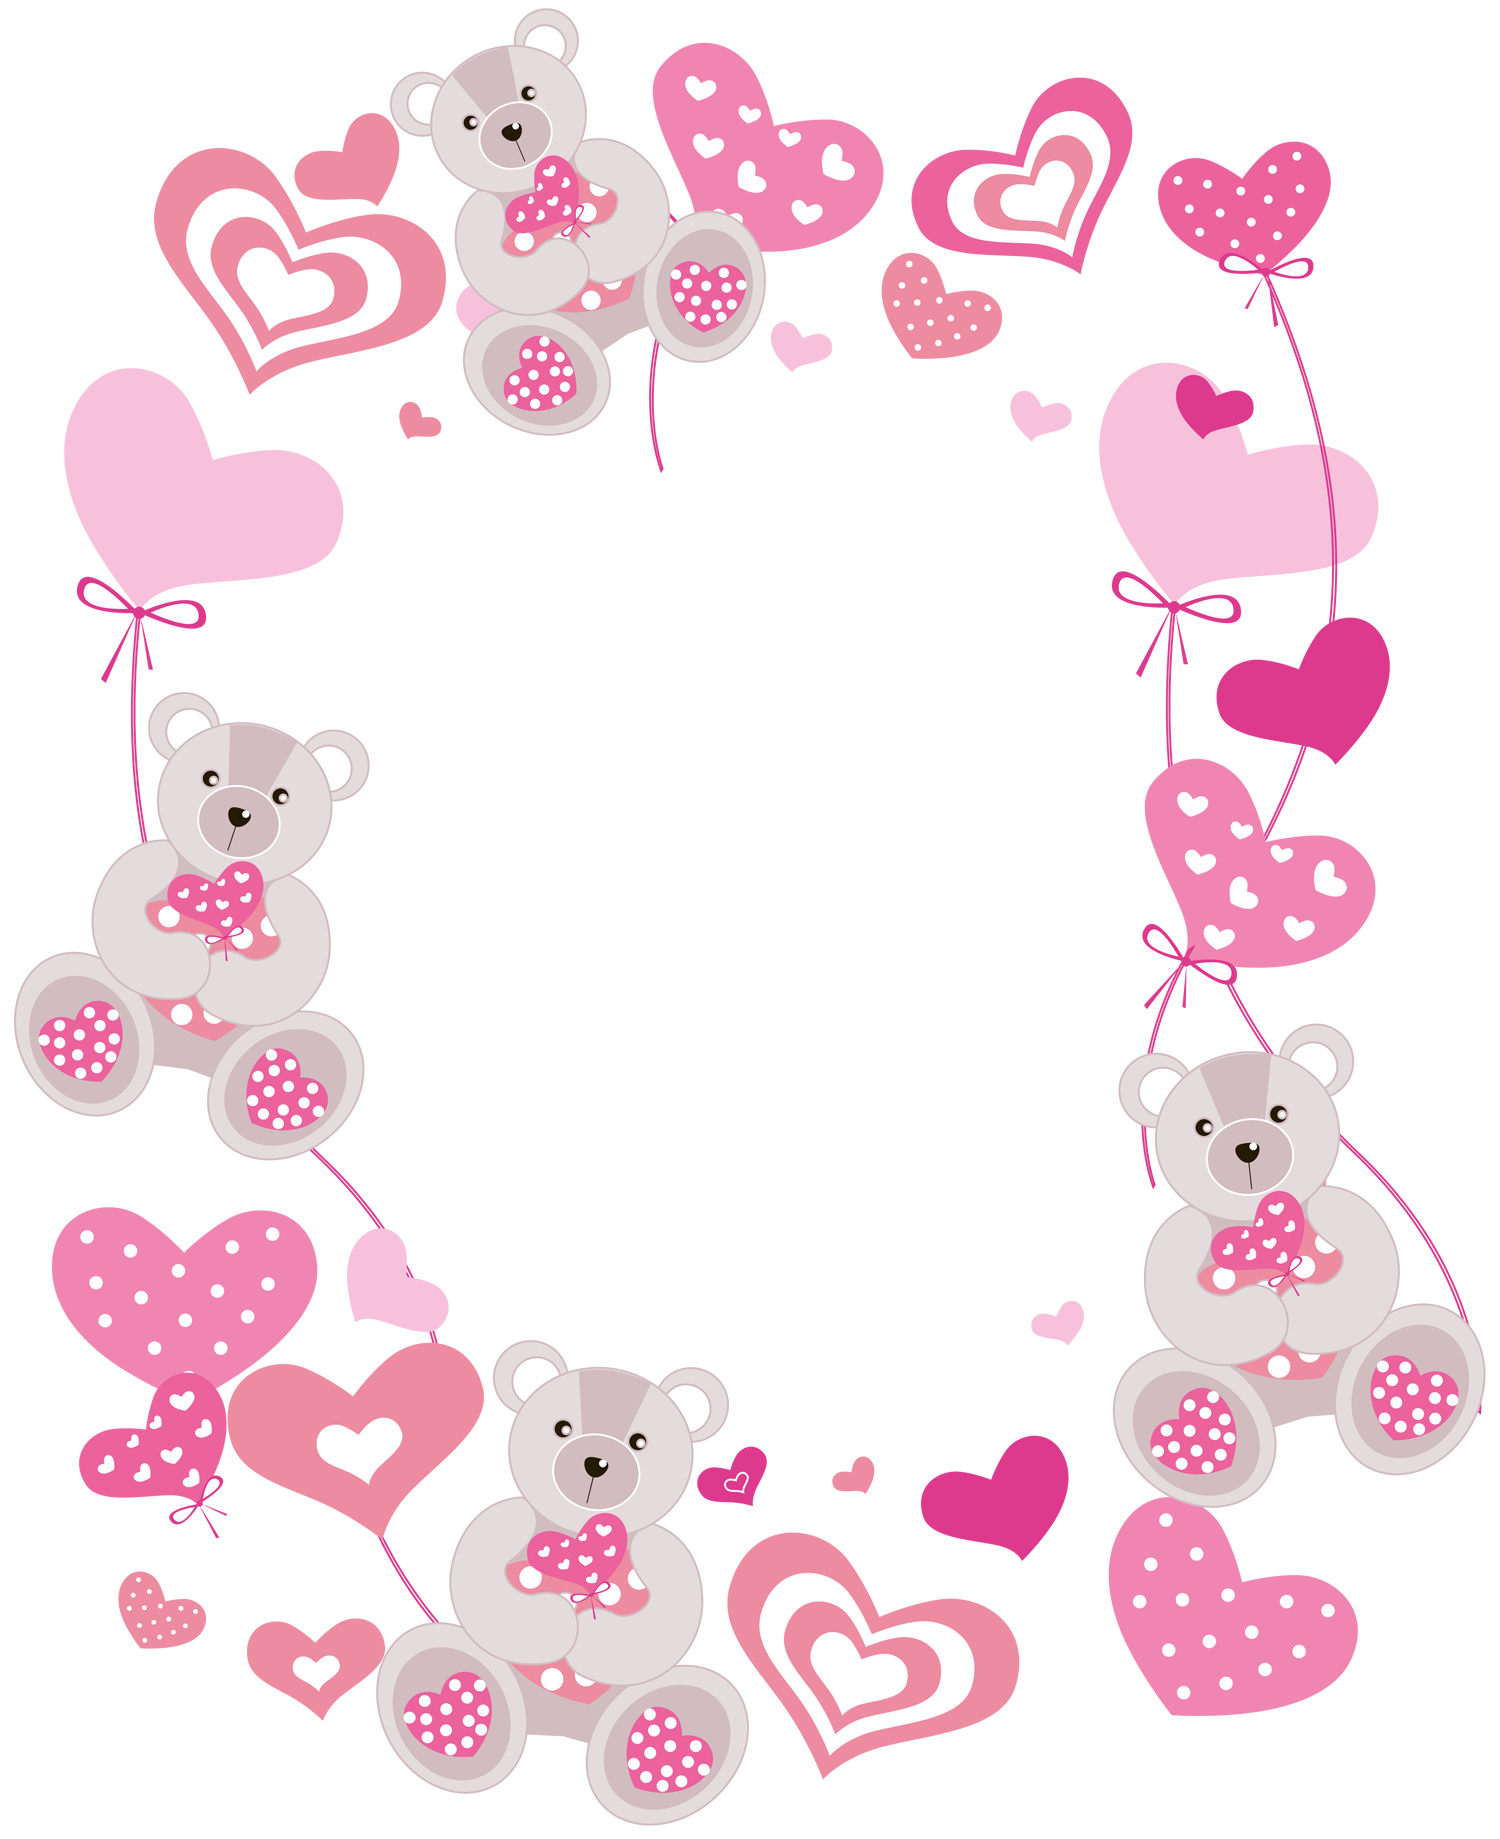 Heart frames clipart graphic freeuse Transparent Hearts PNG Photo Frame with Teddy Bears | cards ... graphic freeuse